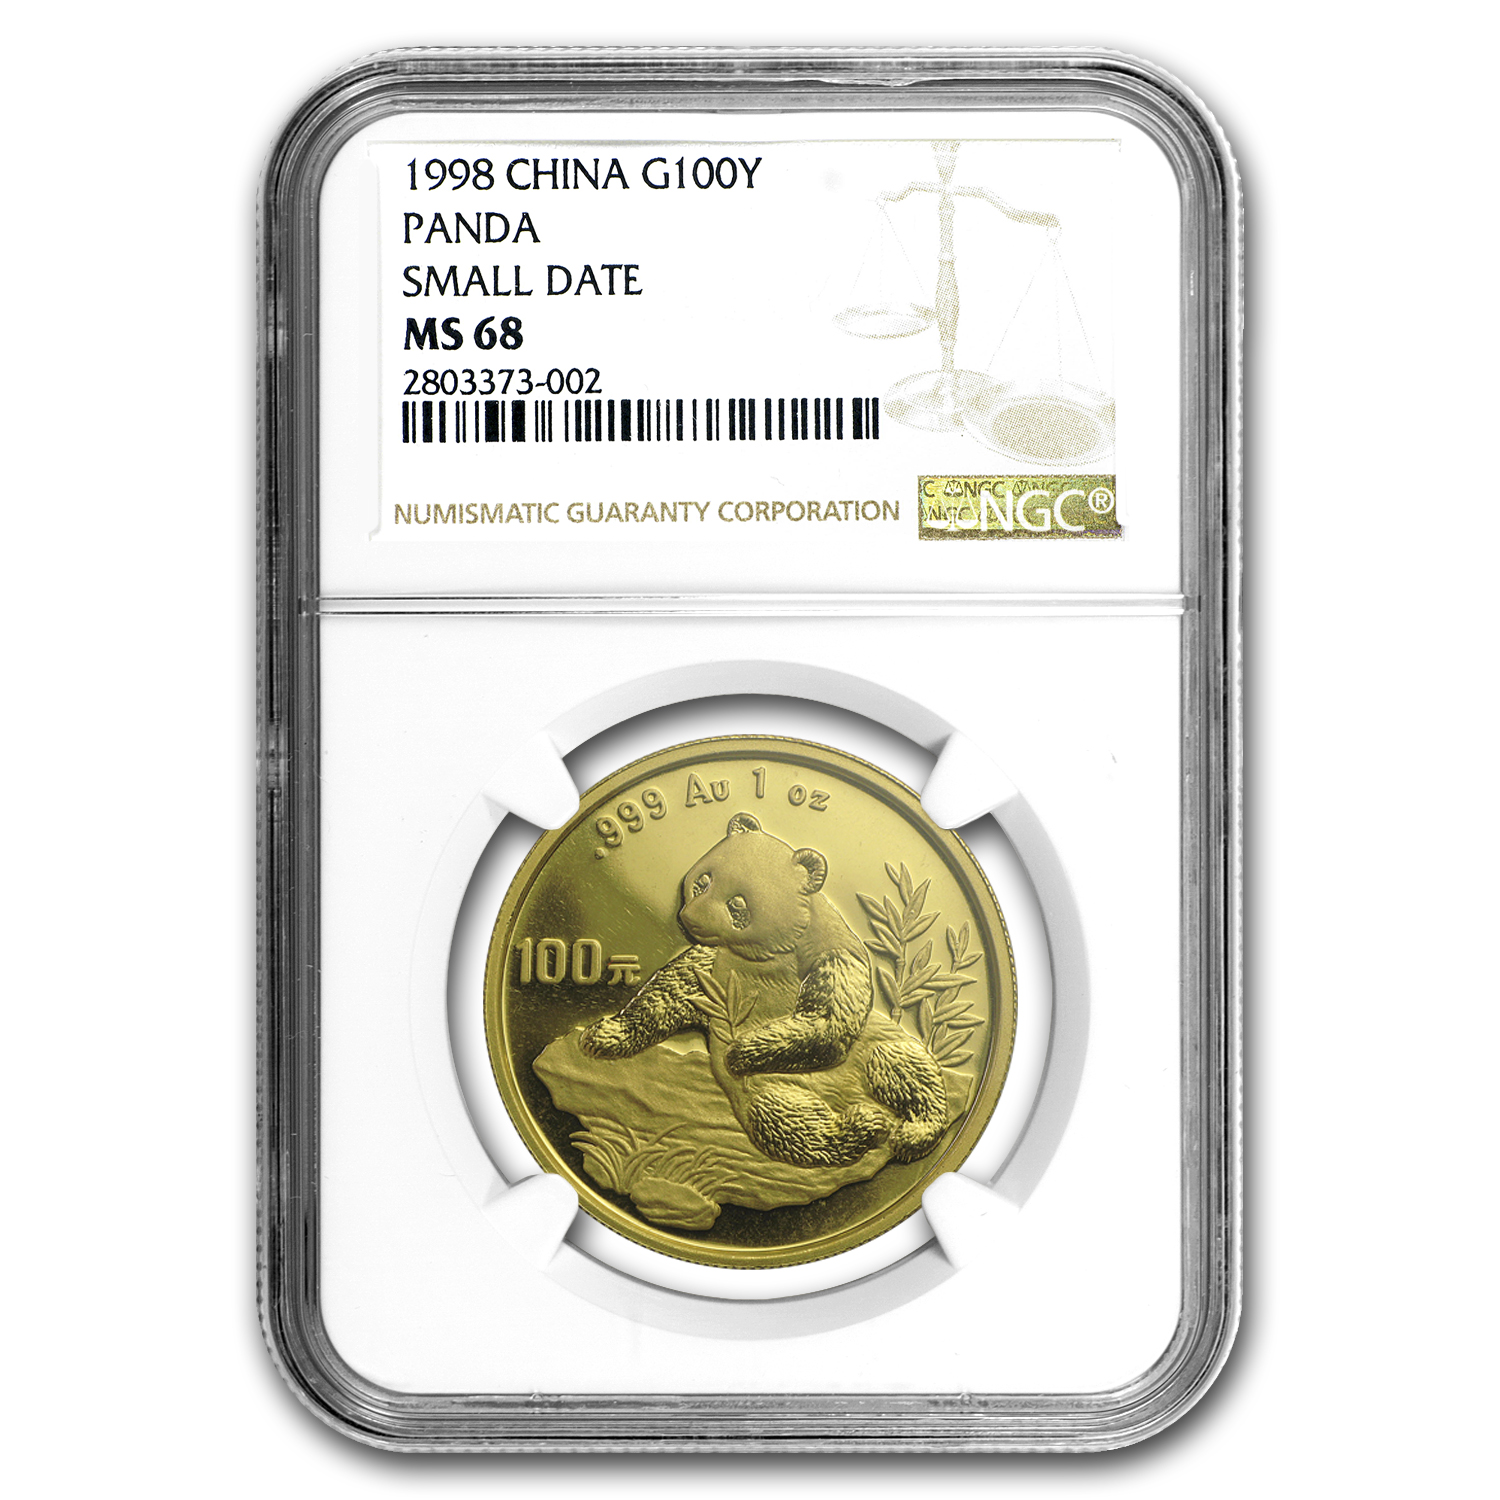 1998 1 oz Gold Chinese Panda MS-68 NGC - Small Date